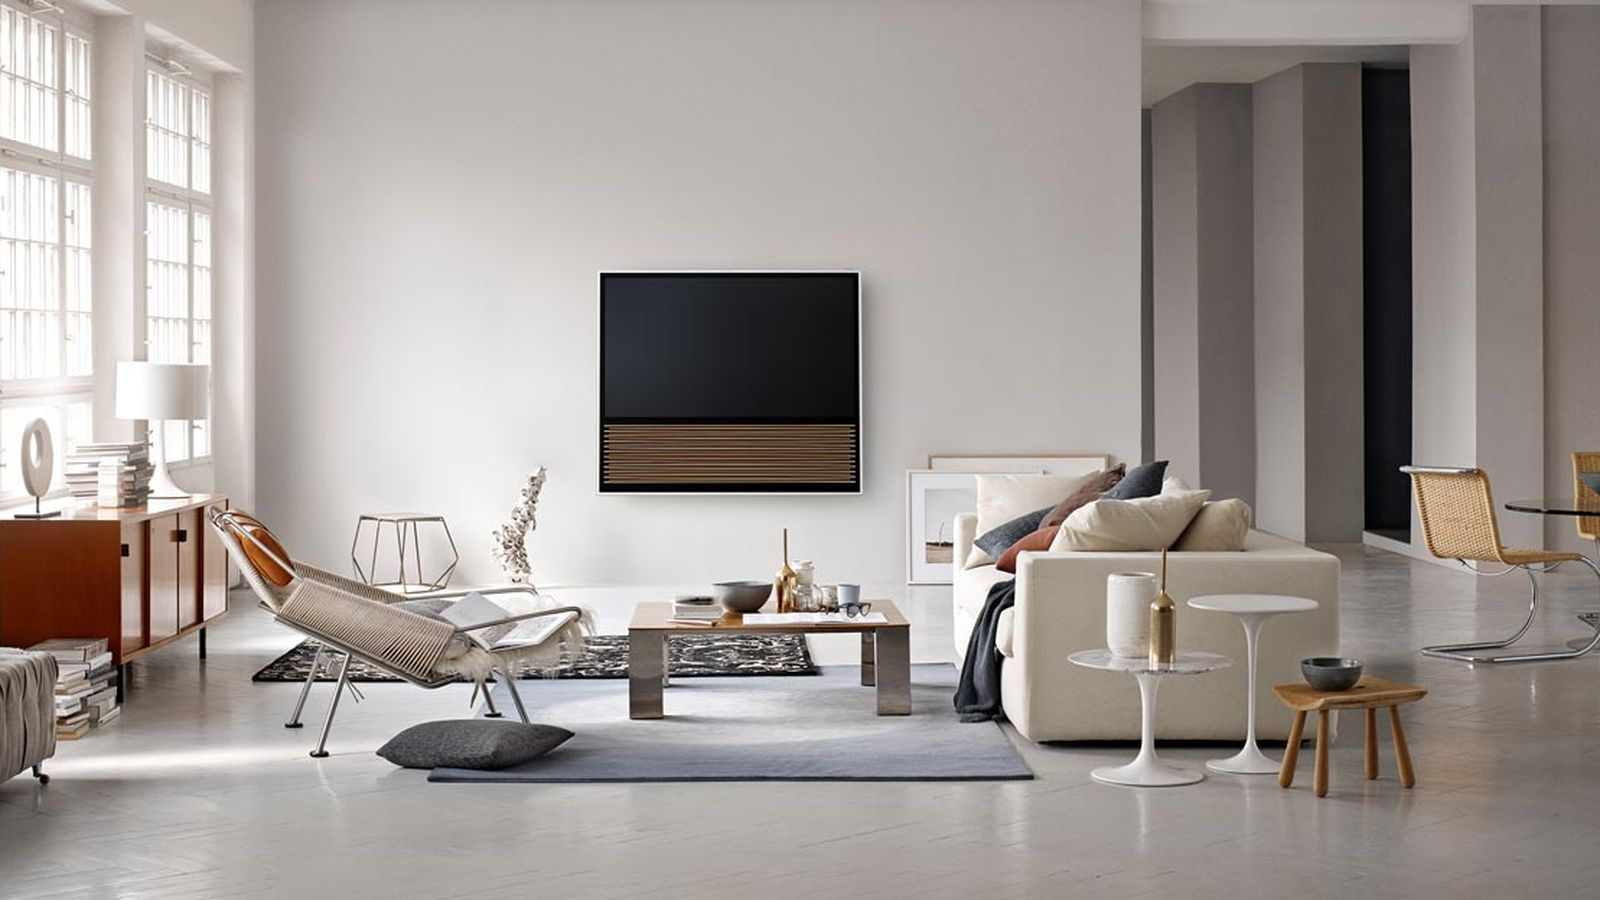 beovision14-television television Bang & Olufsen revamps television as decor centerpiece beovision14 television